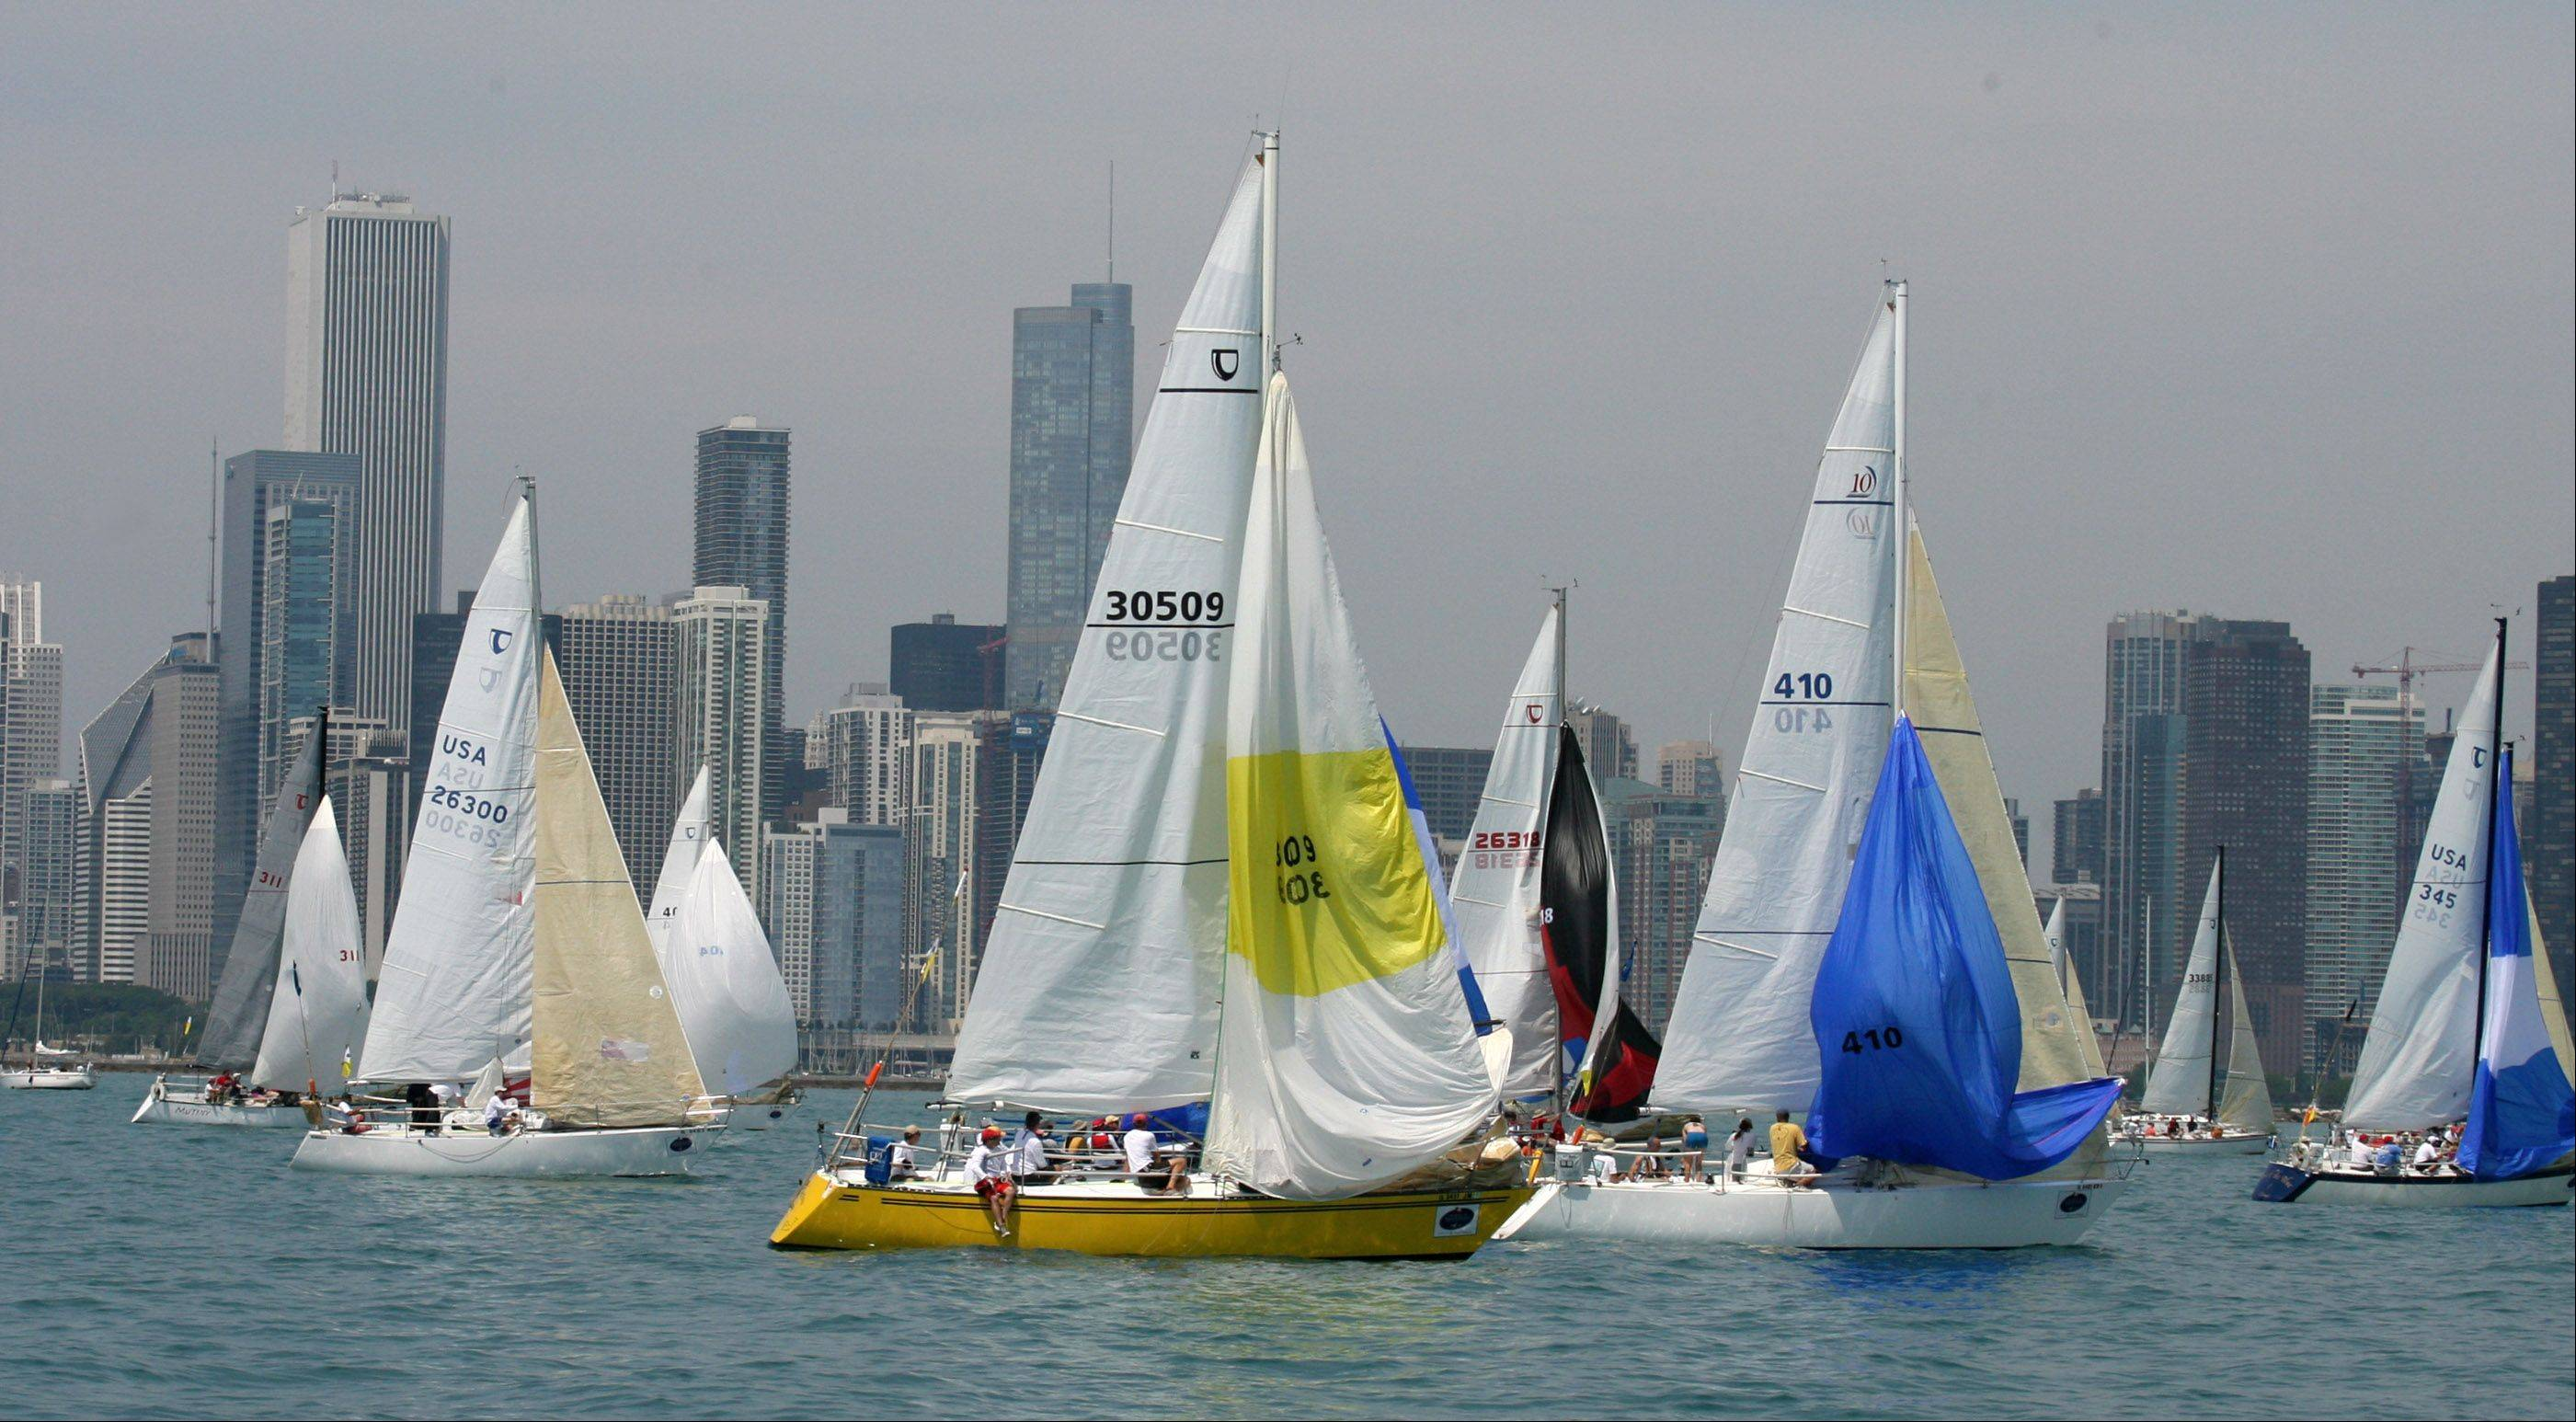 Grytviken, USA 30509, center yellow, owned by Piotr Madrzyk, of Bloomingdale, with the Polish Yacht Club Chicago, at the start of the 104th Chicago Yacht Club Race to Mackinac on Lake Michigan near Chicago on Saturday, July 21.